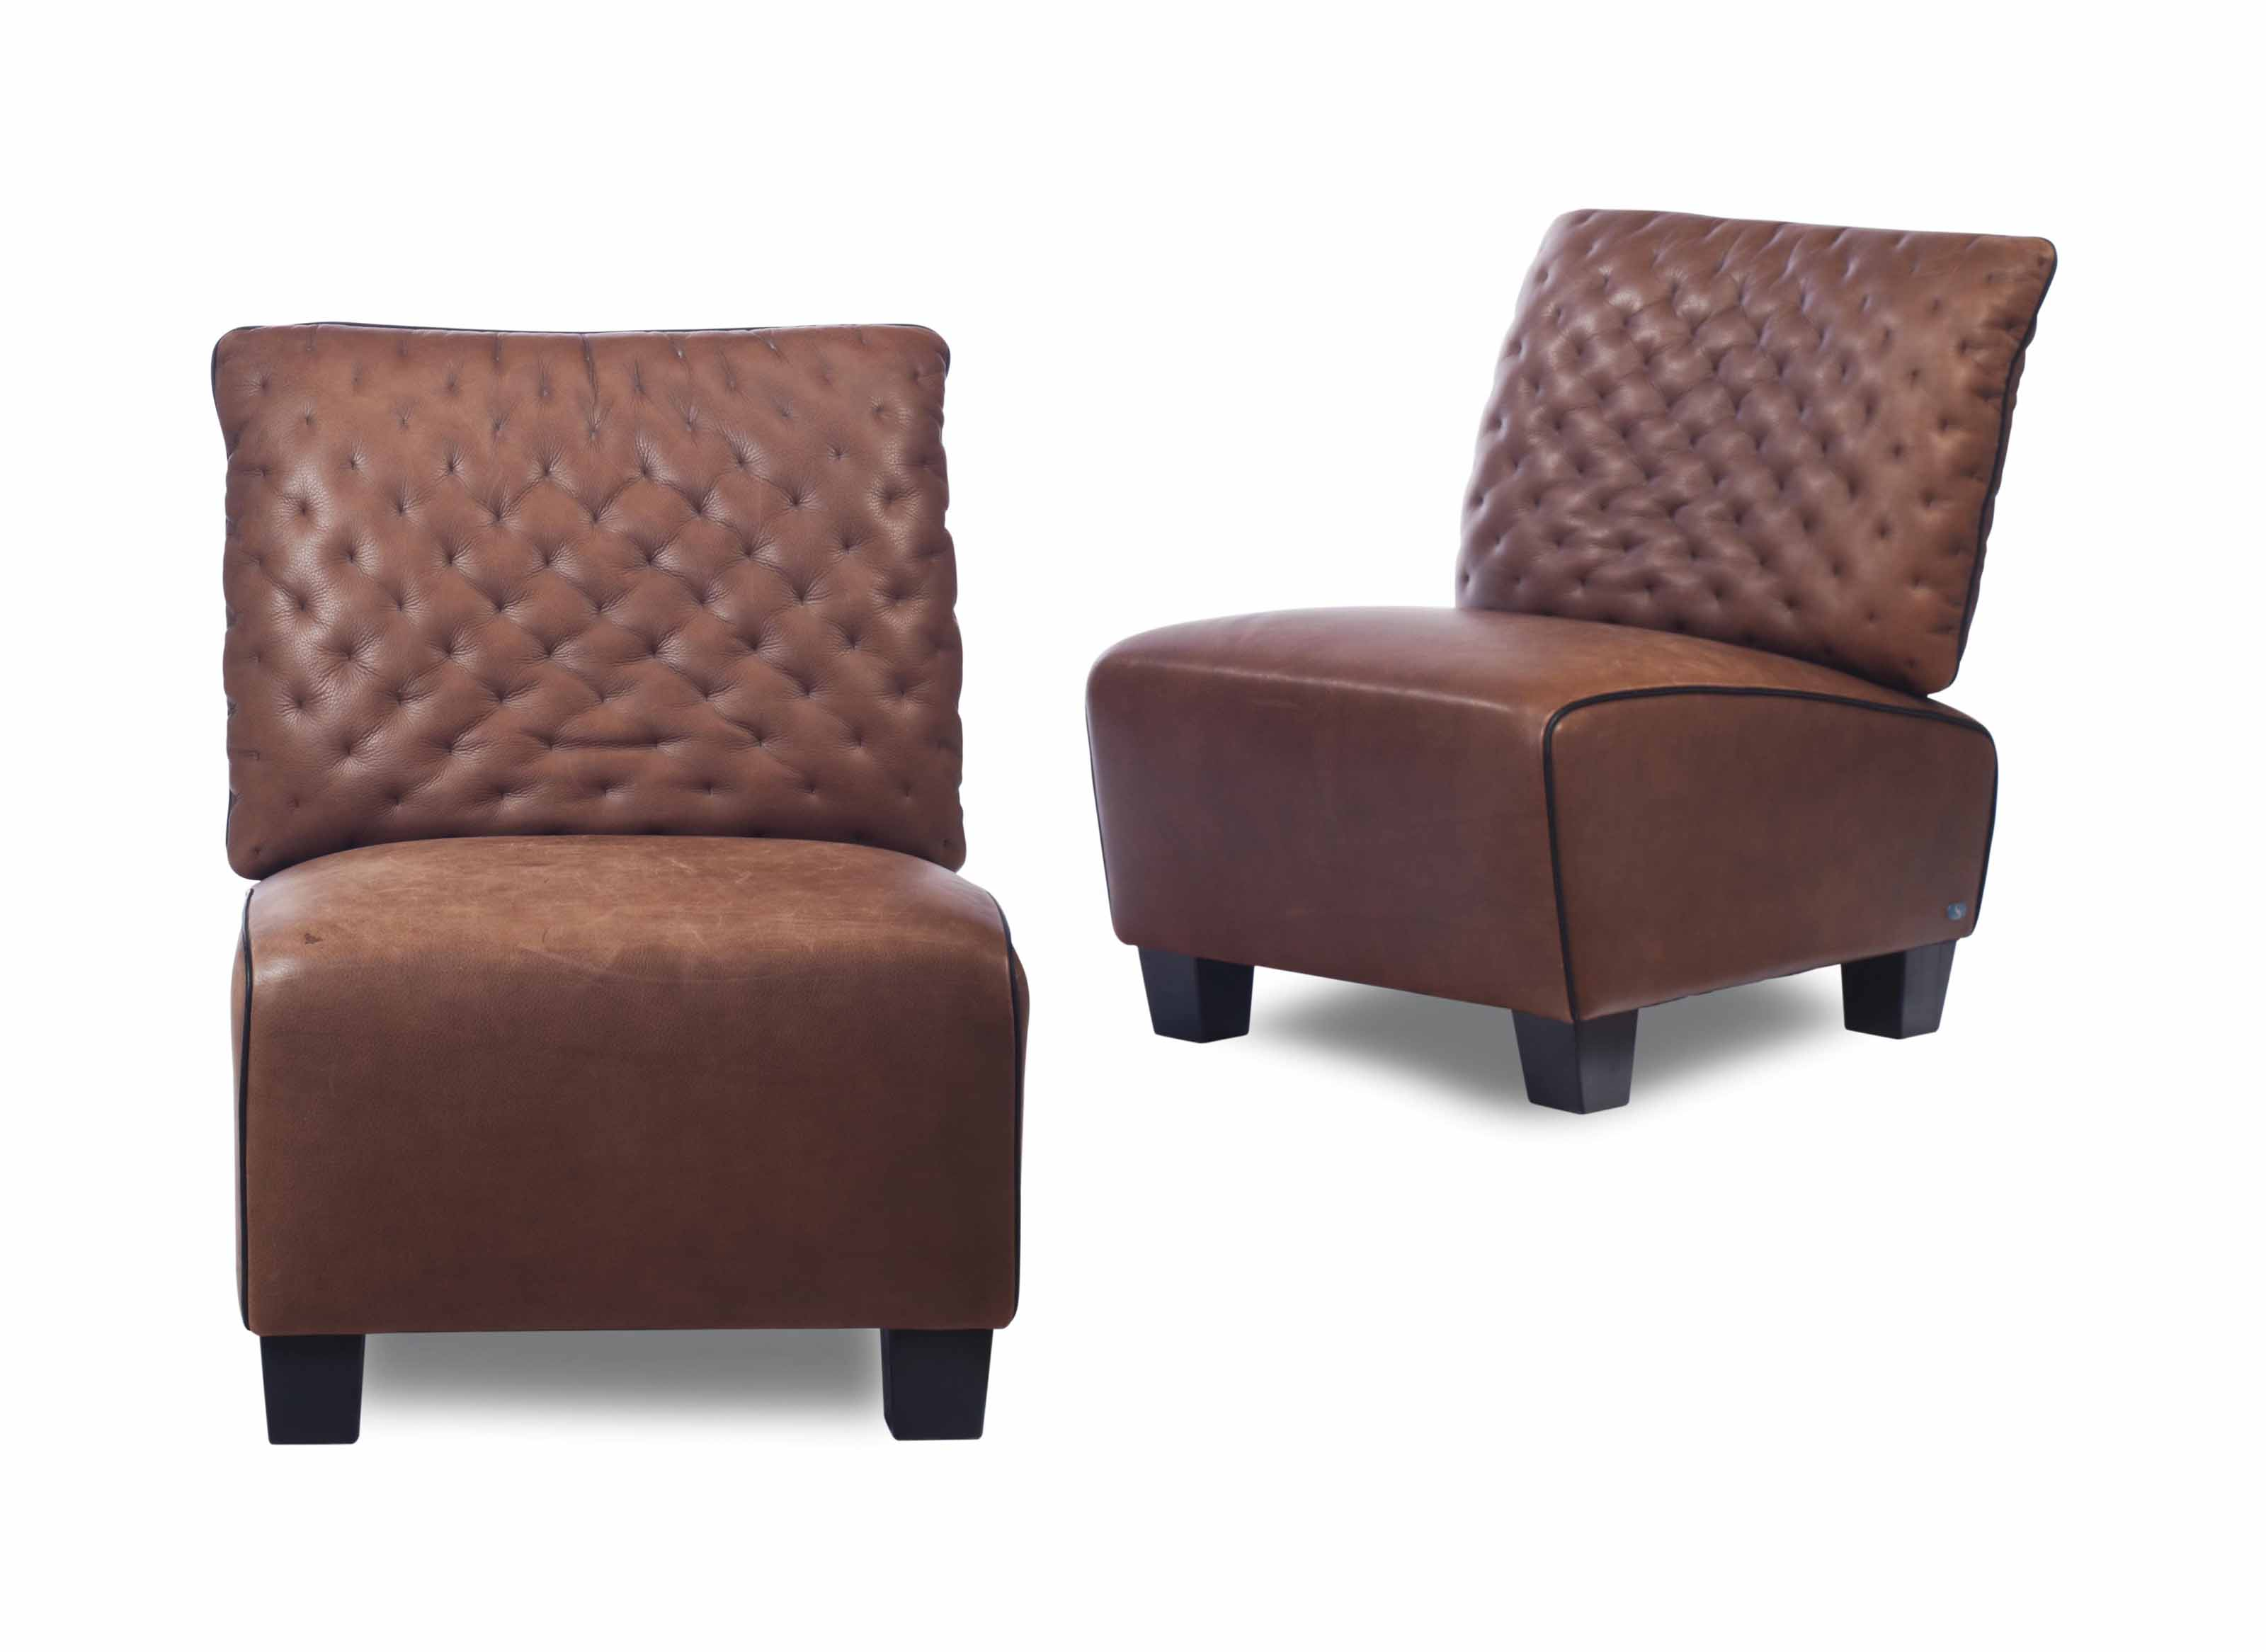 leather slipper chair chocolate best guitar stool a pair of brown chairs by de sede